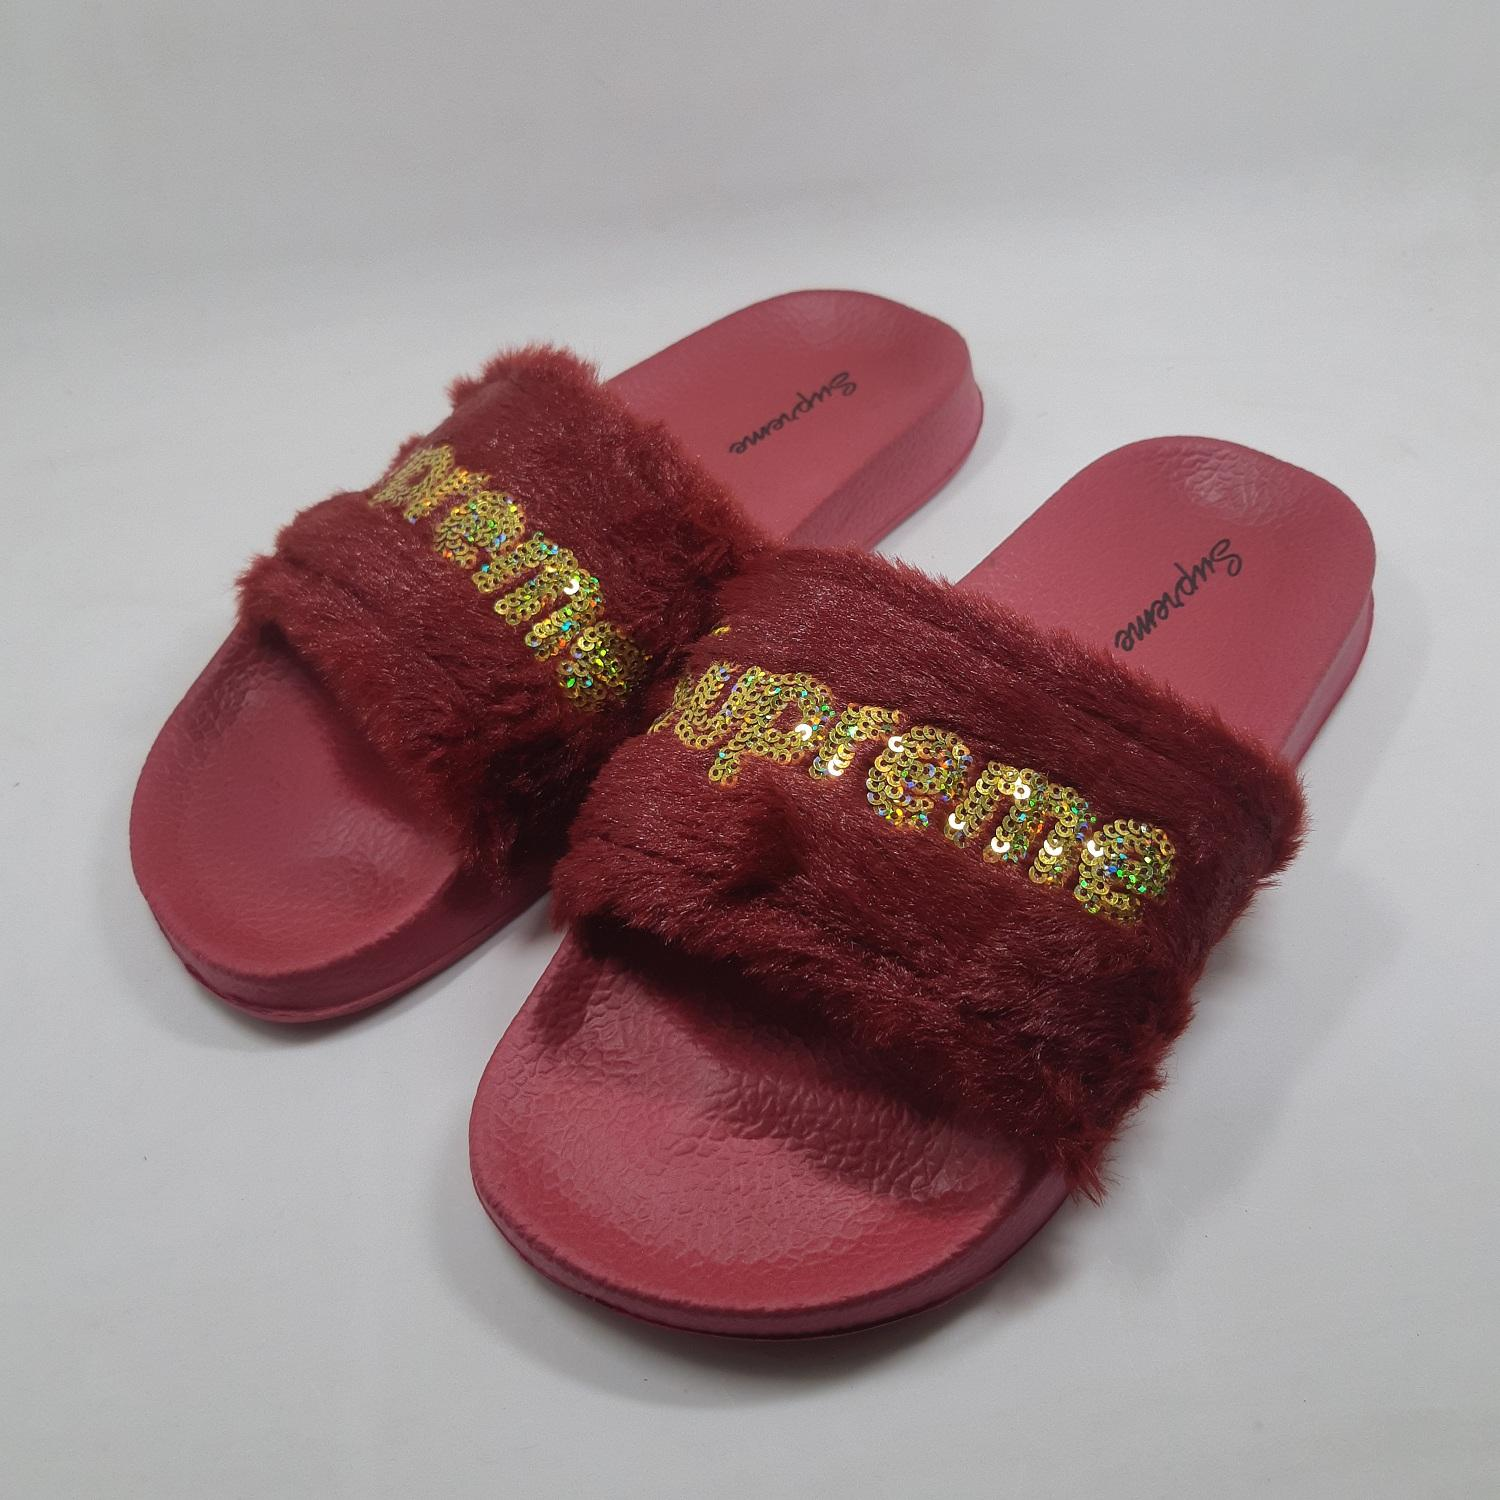 100% authentic 97dd8 702d6 Supreme Fenty Fur Slides Cute and Trendy Slippers for Women